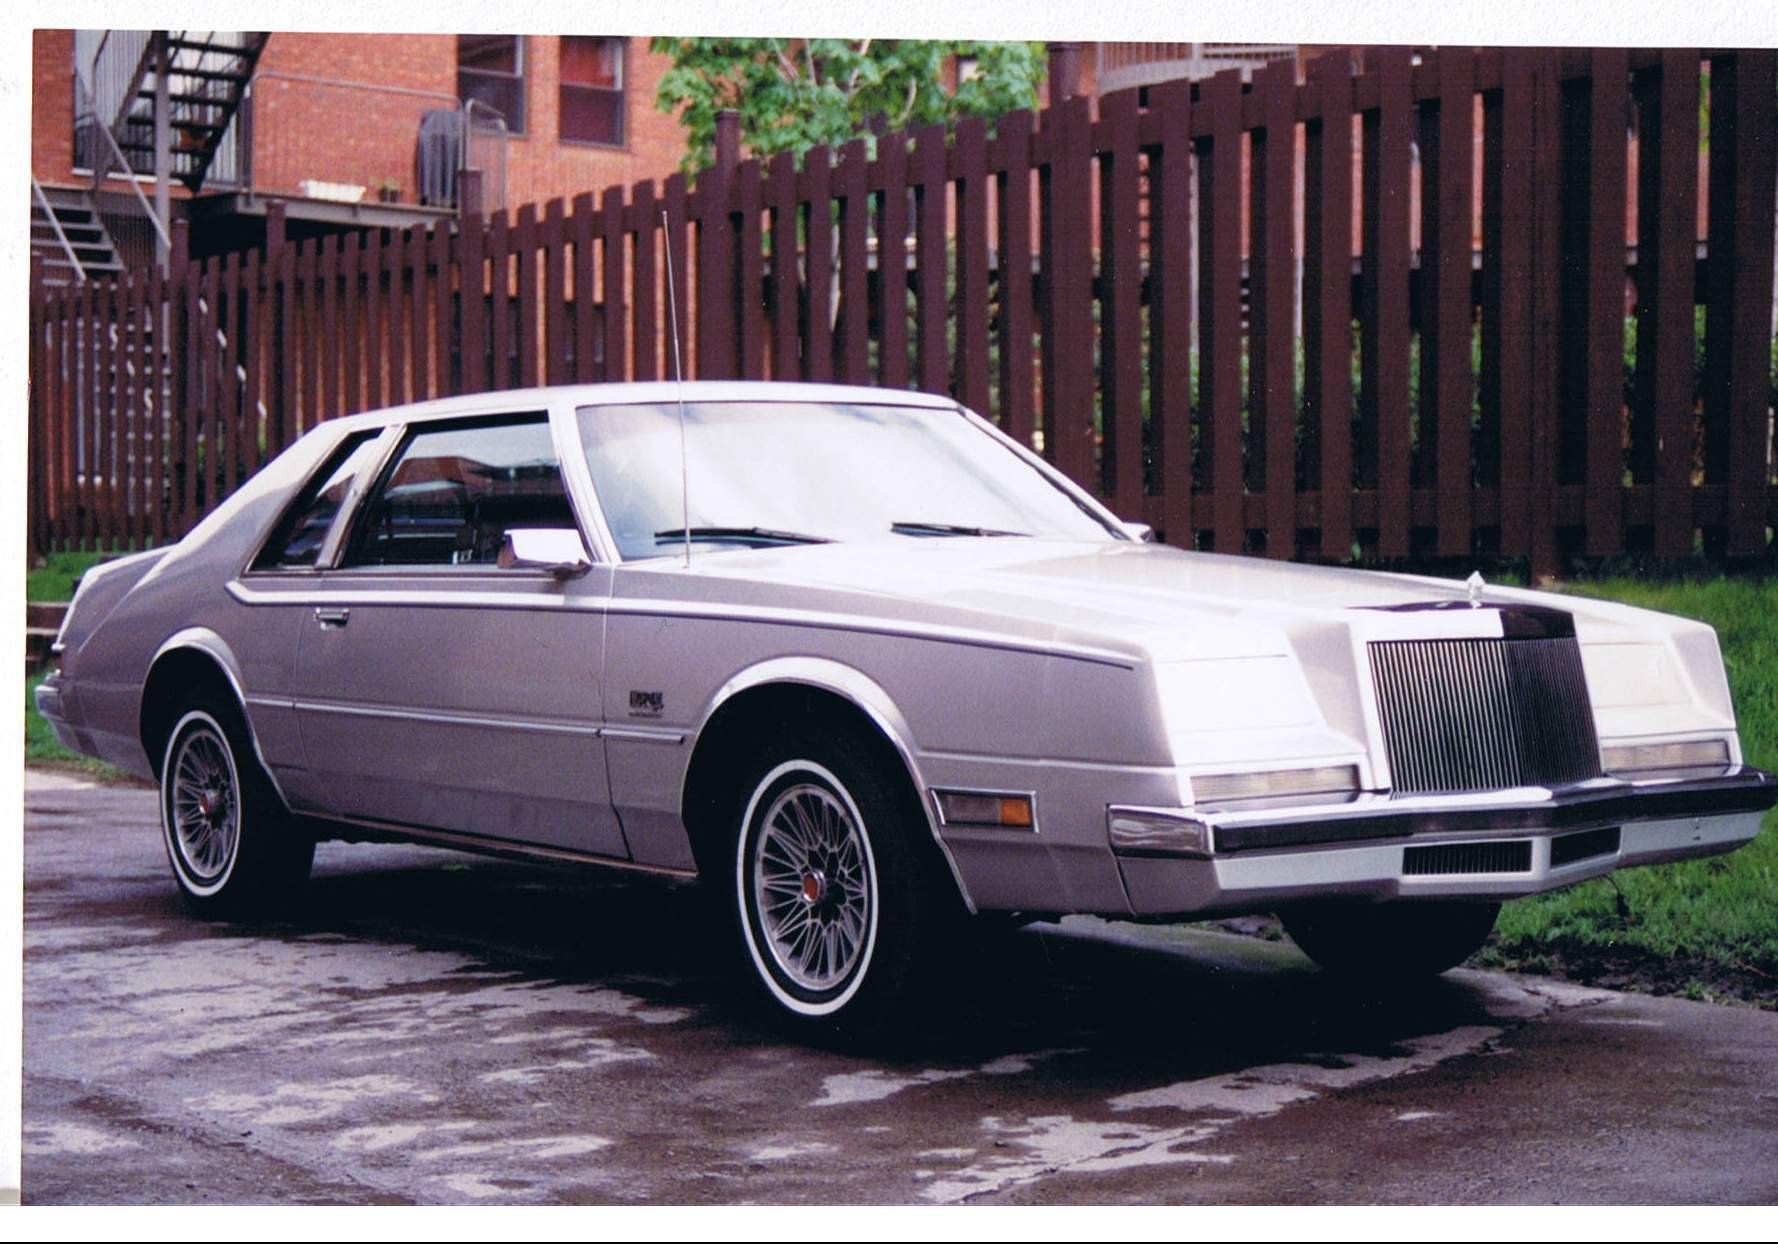 1981 Imperial Chrysler Imperial Imperial Classic Cars